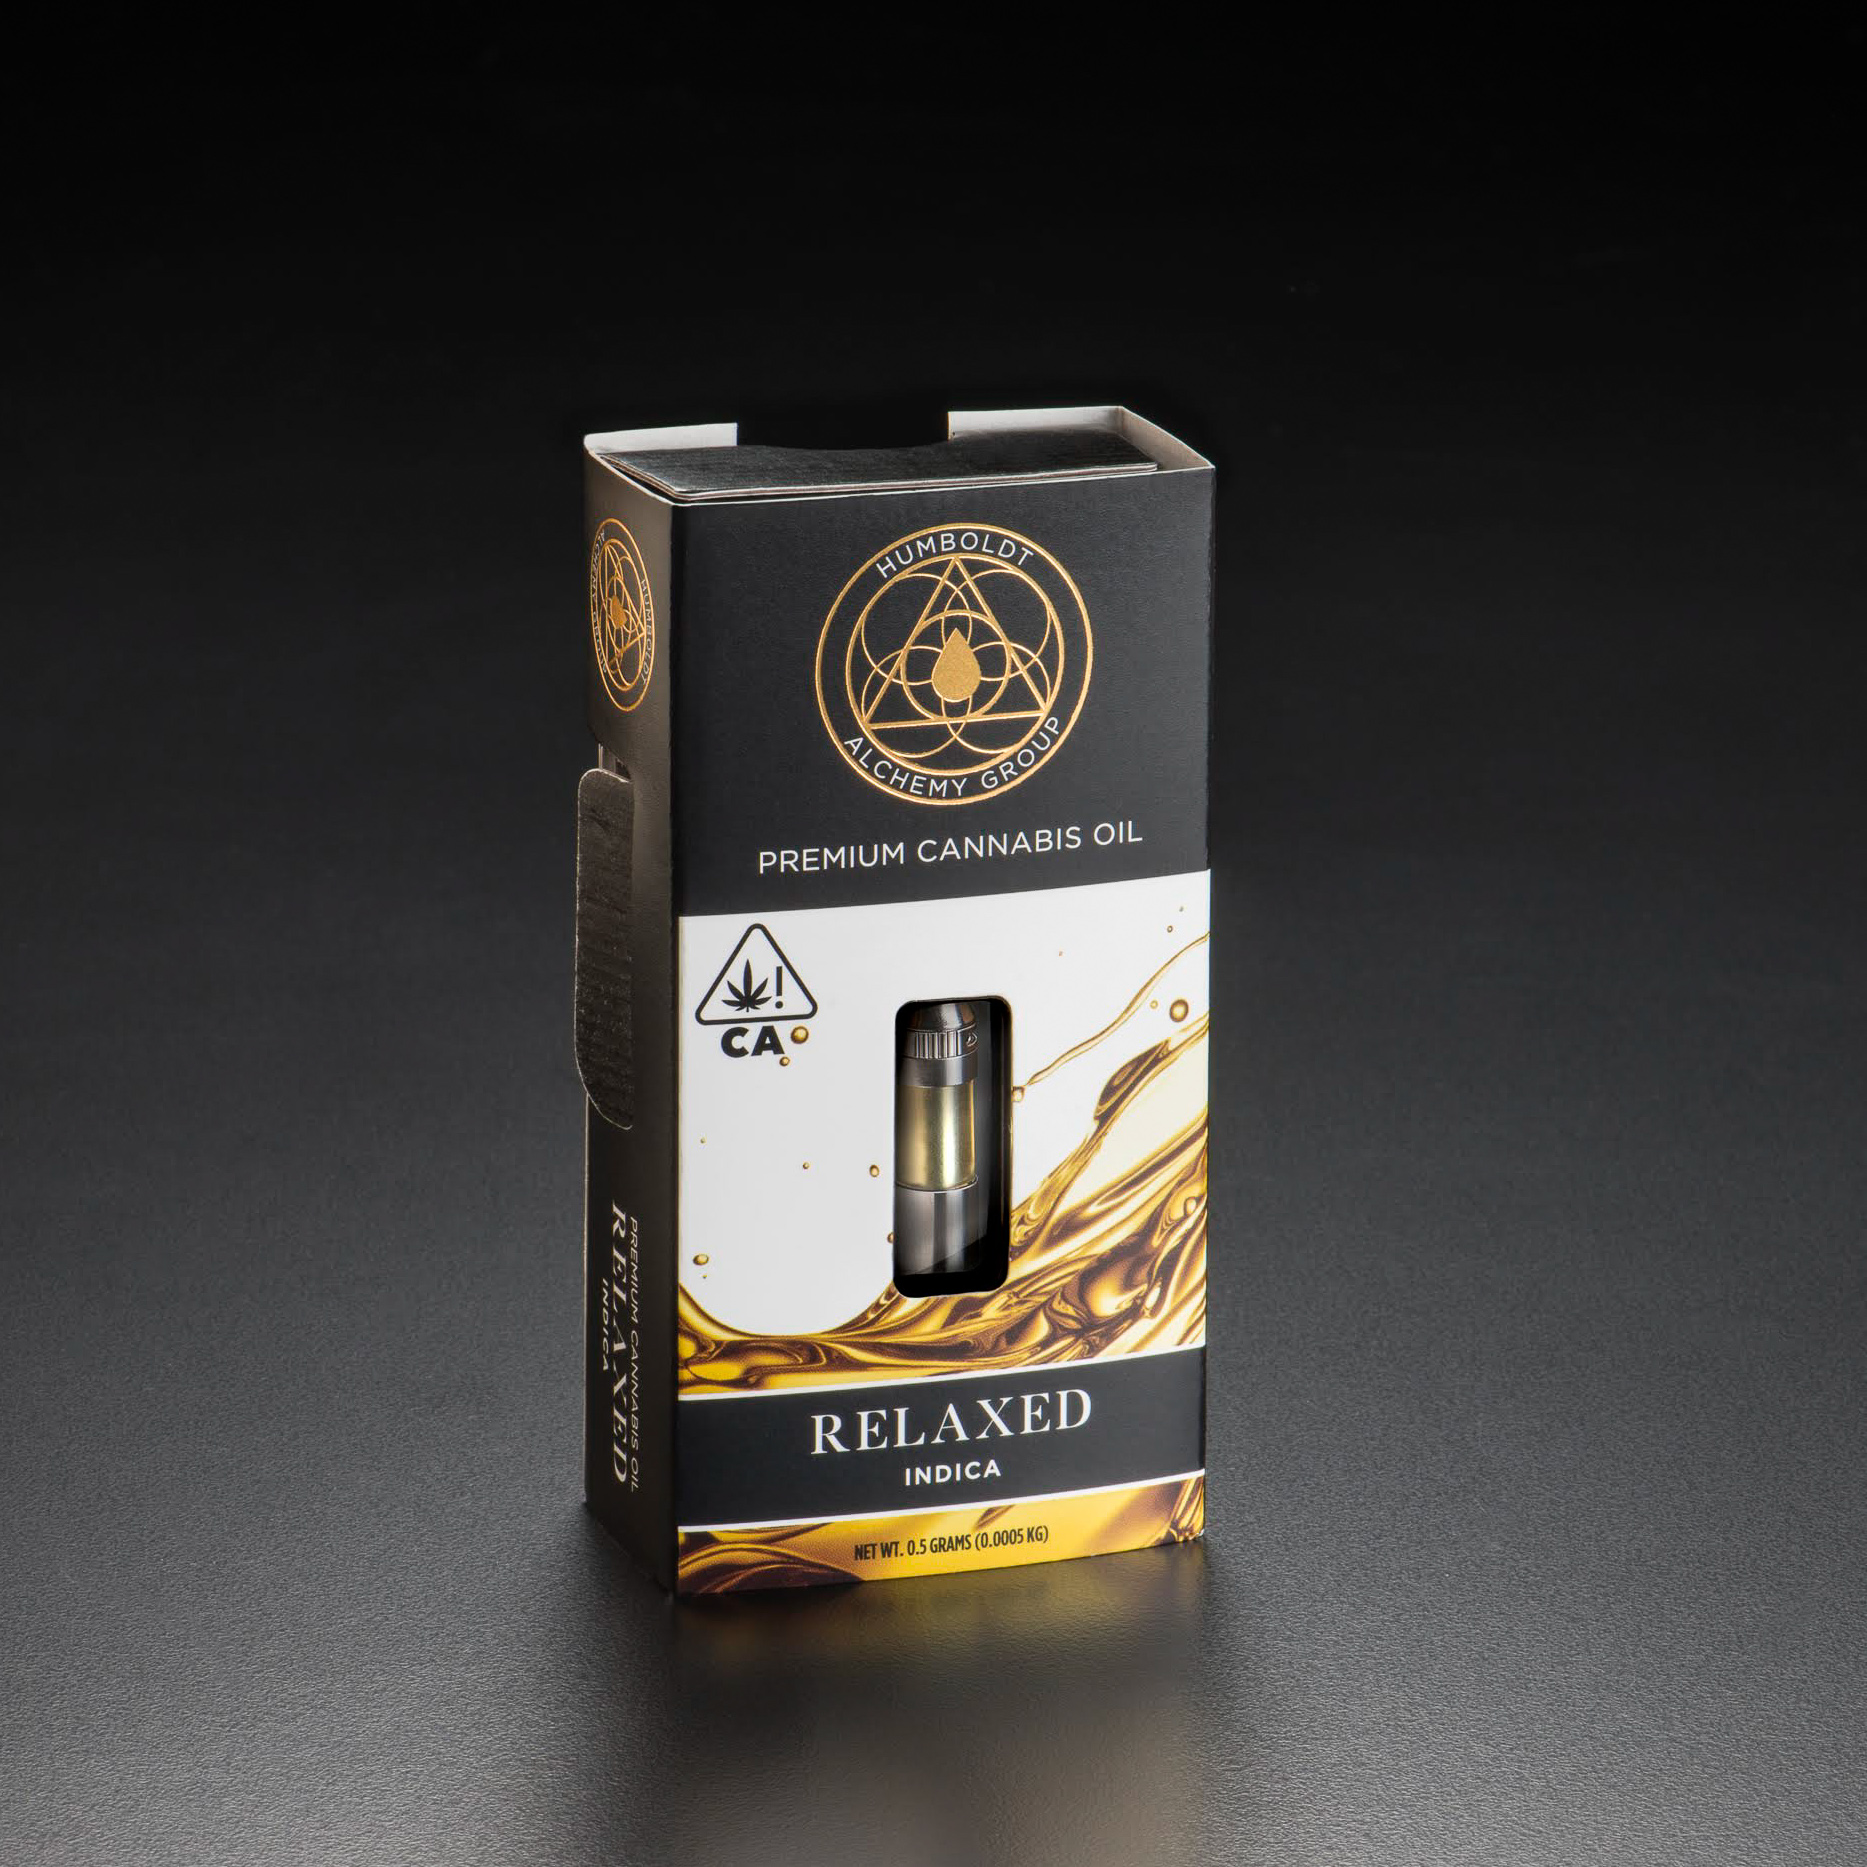 Relaxed - Relaxed offers an unwinding experience that will lead to a deep sigh of tranquility. Featuring the terpene profile of OG Kush. To learn more explore our Strain Library.We take great care in crafting our blend of CO2 extract, distillate, and true cannabis terpenes to offer a high quality and consistent experience.During our process we capture cannabis terpenes and introduce them back into the oil to create depth and flavor in our blends. There are no additives or synthetic terpenes in our products.